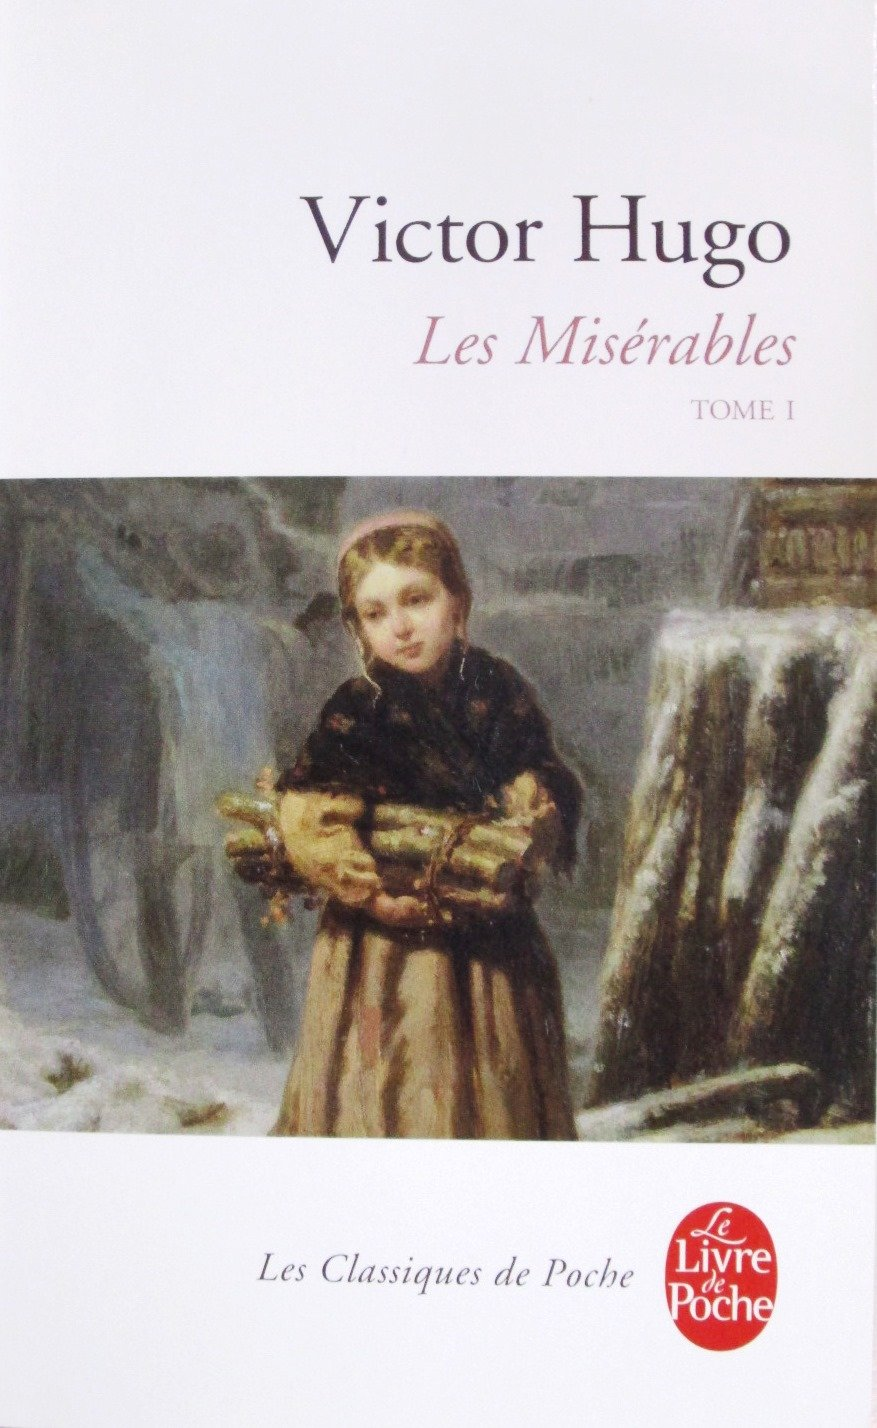 Les Miserables Le Livre De Poche Vol 1 French Edition